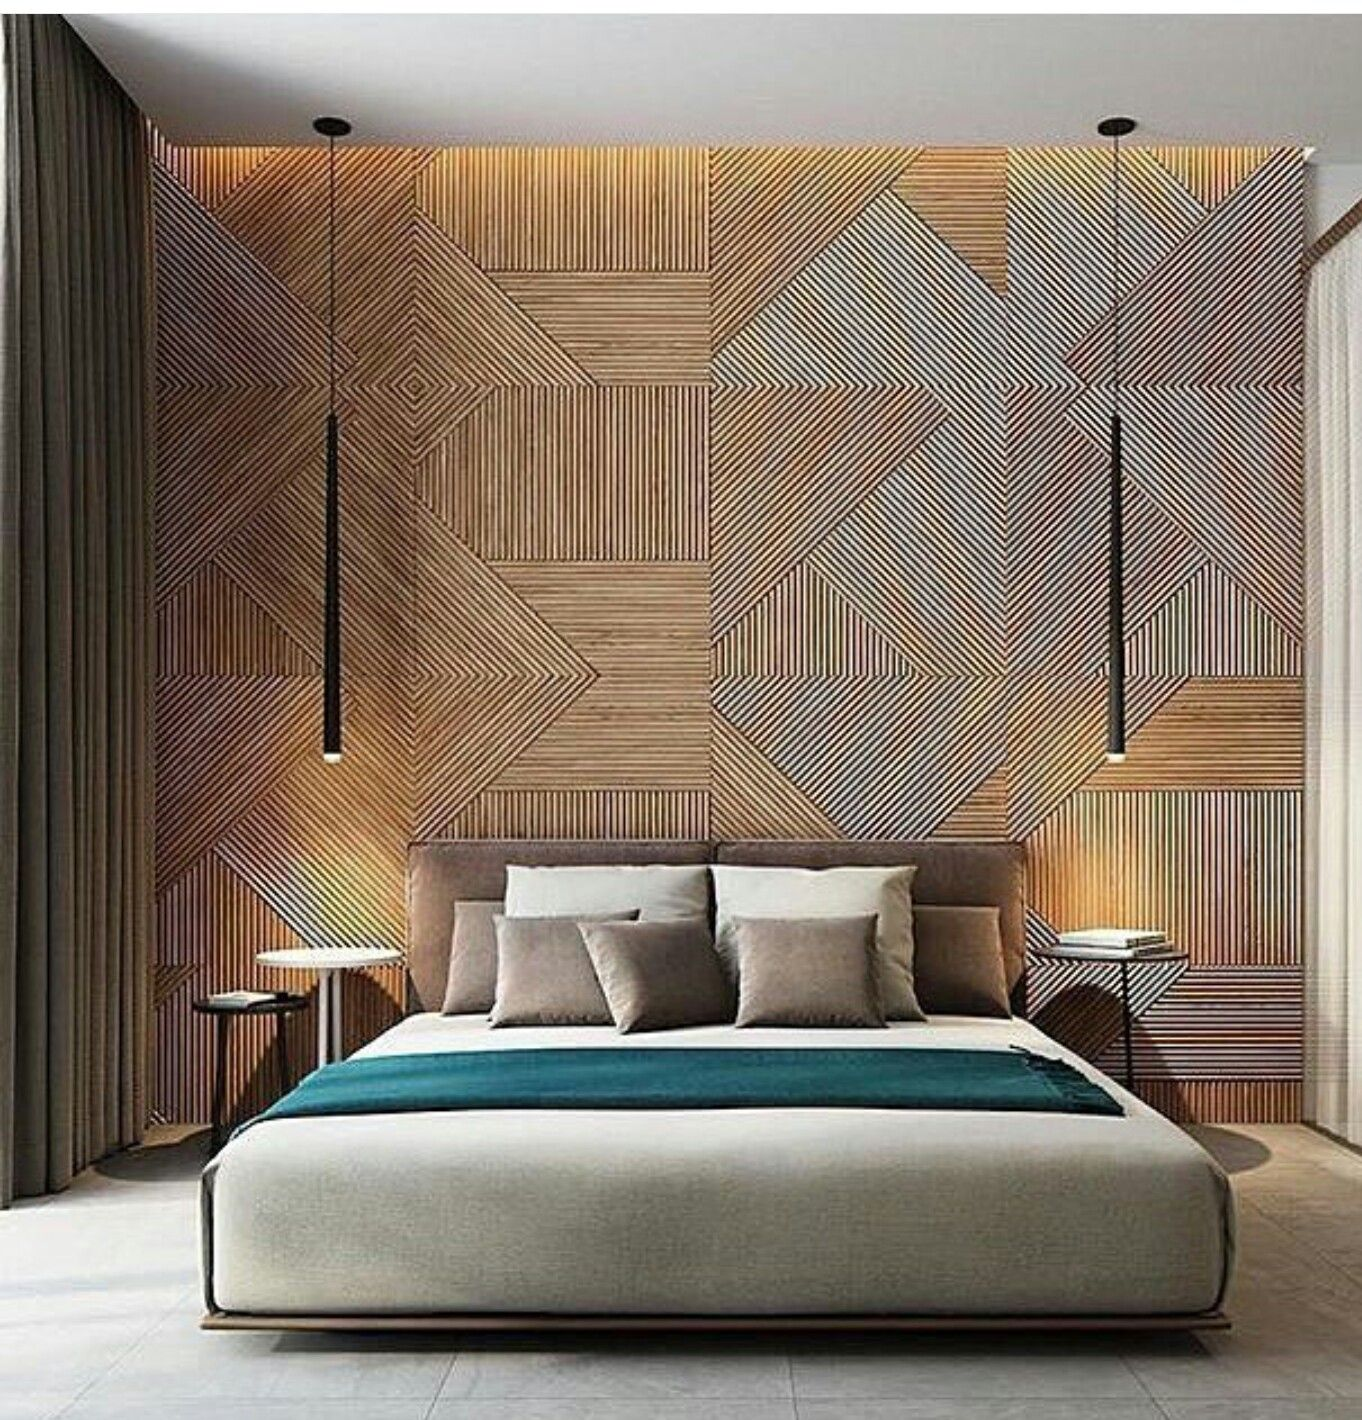 Color combo and wall pattern | Architecture - Interior | Pinterest ...